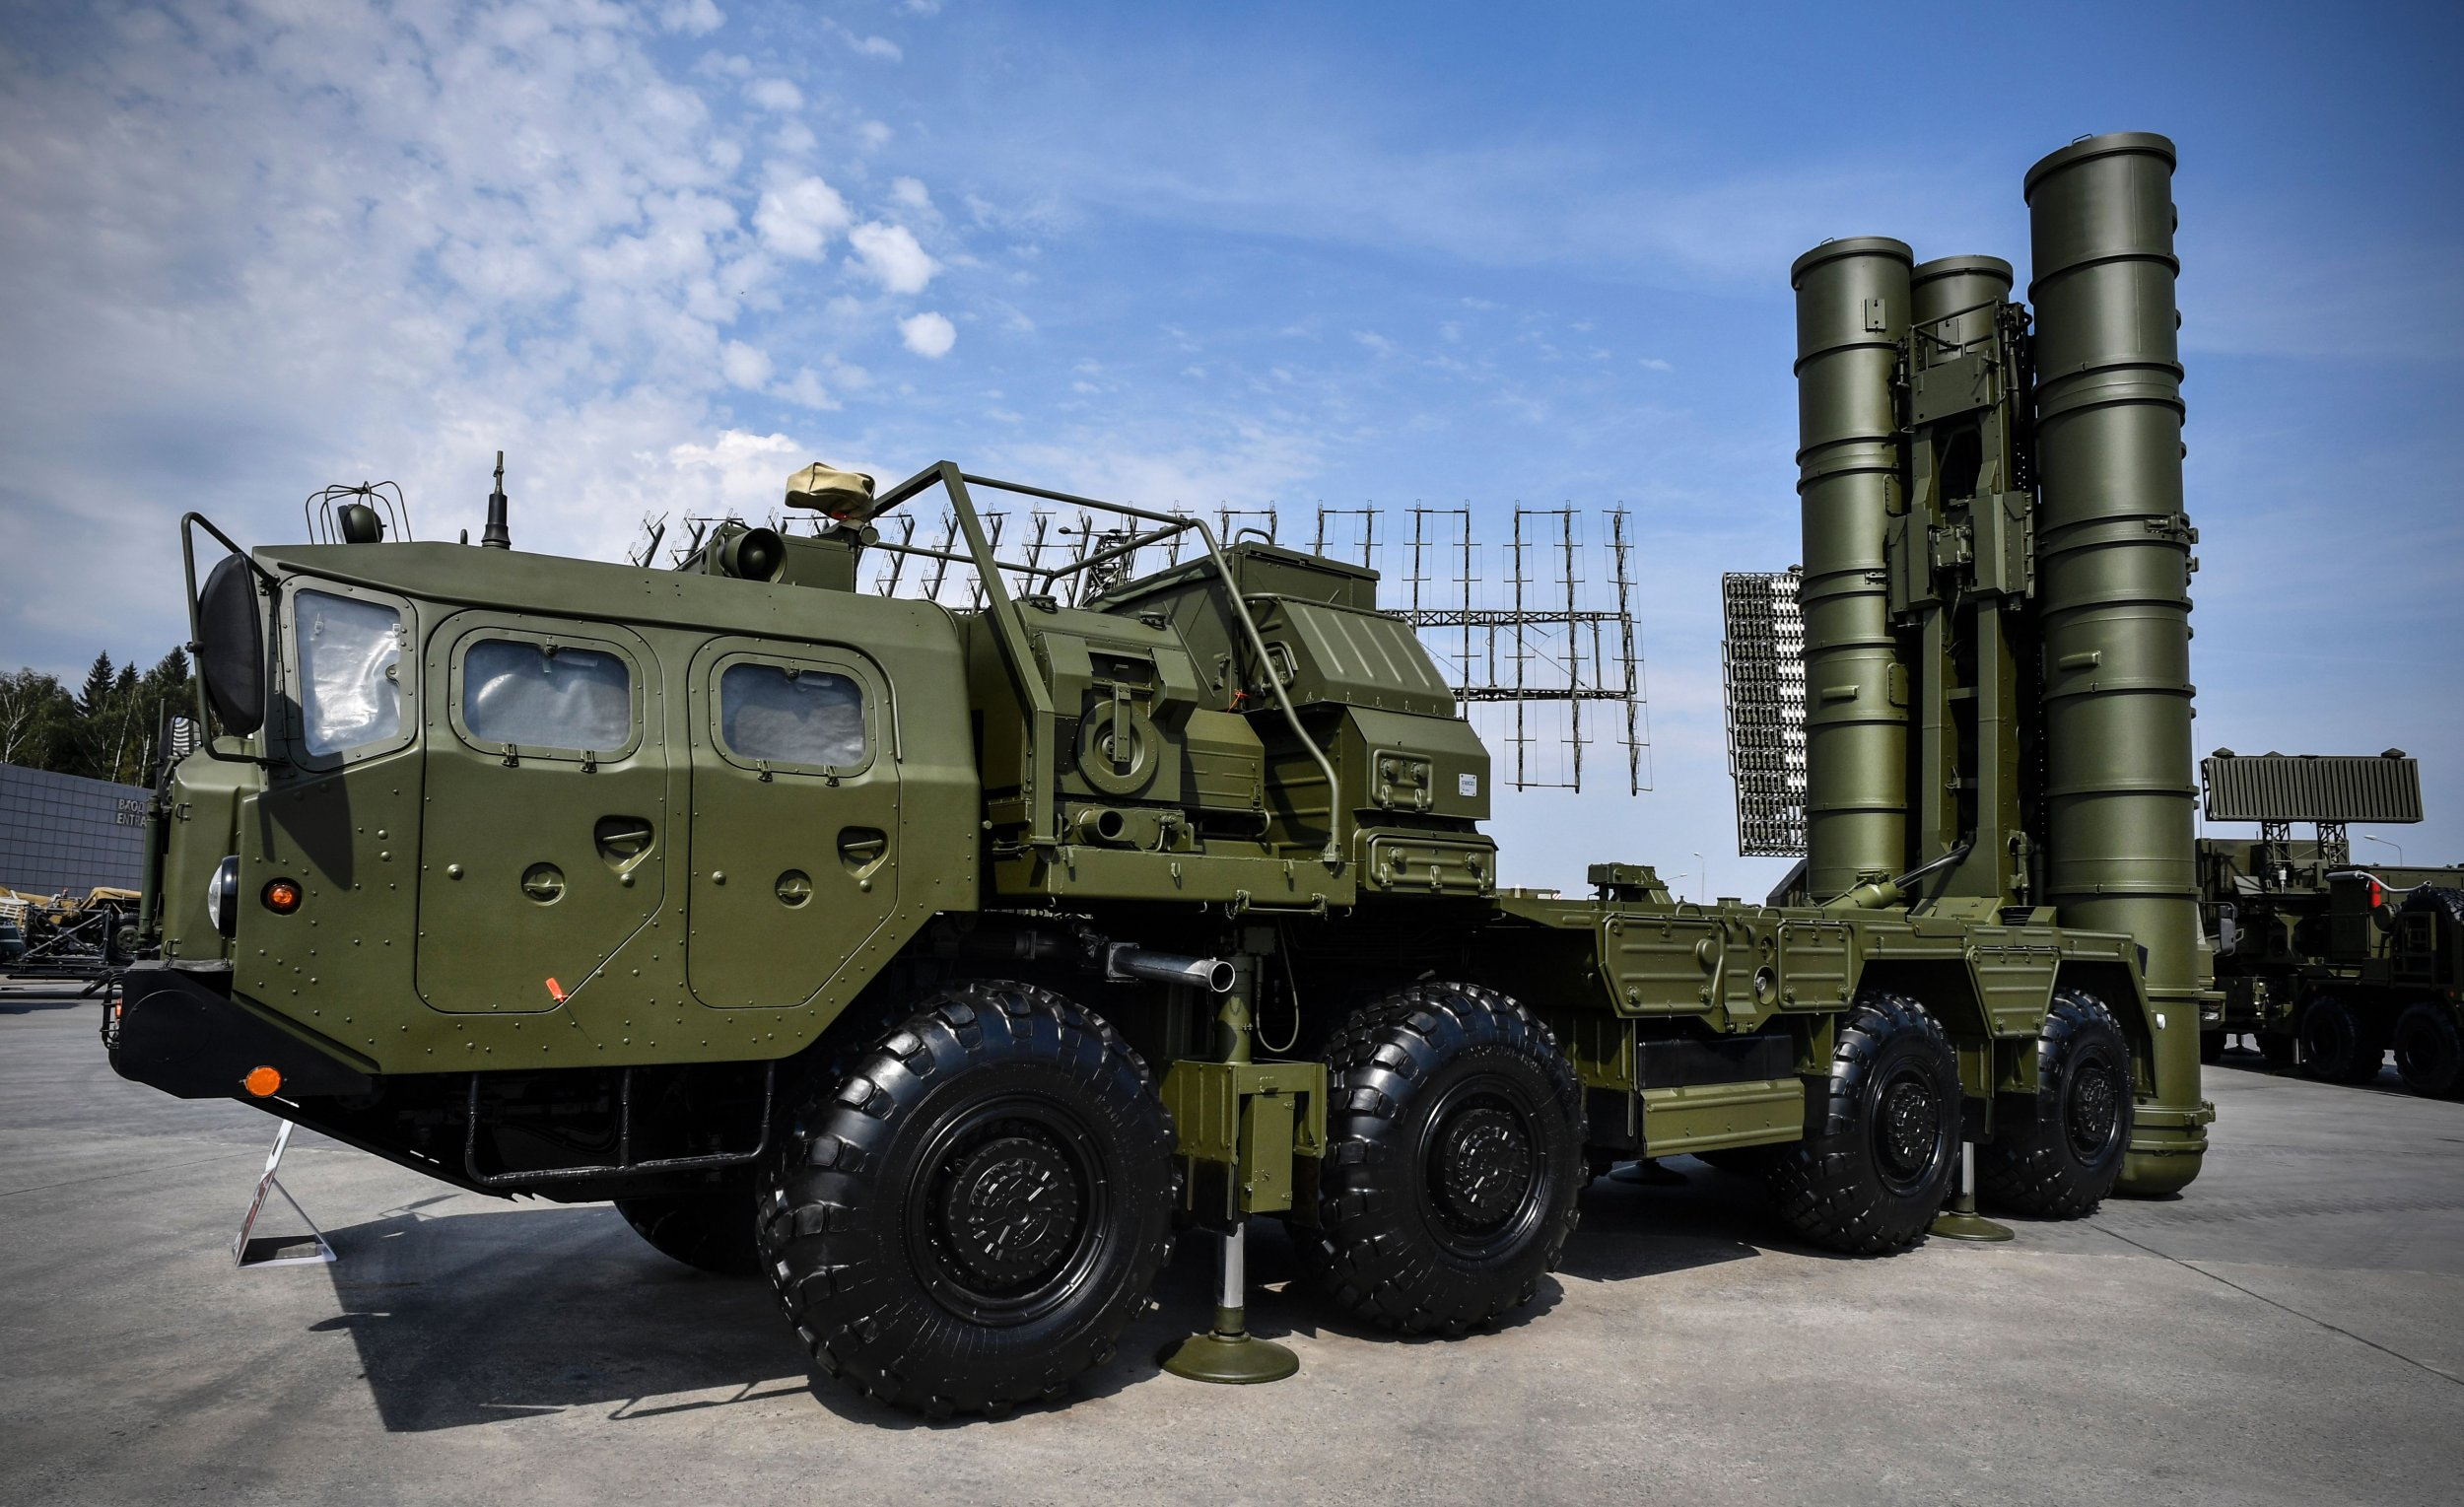 Russia Turkey s-400 anti-air US ultimatum sanctions